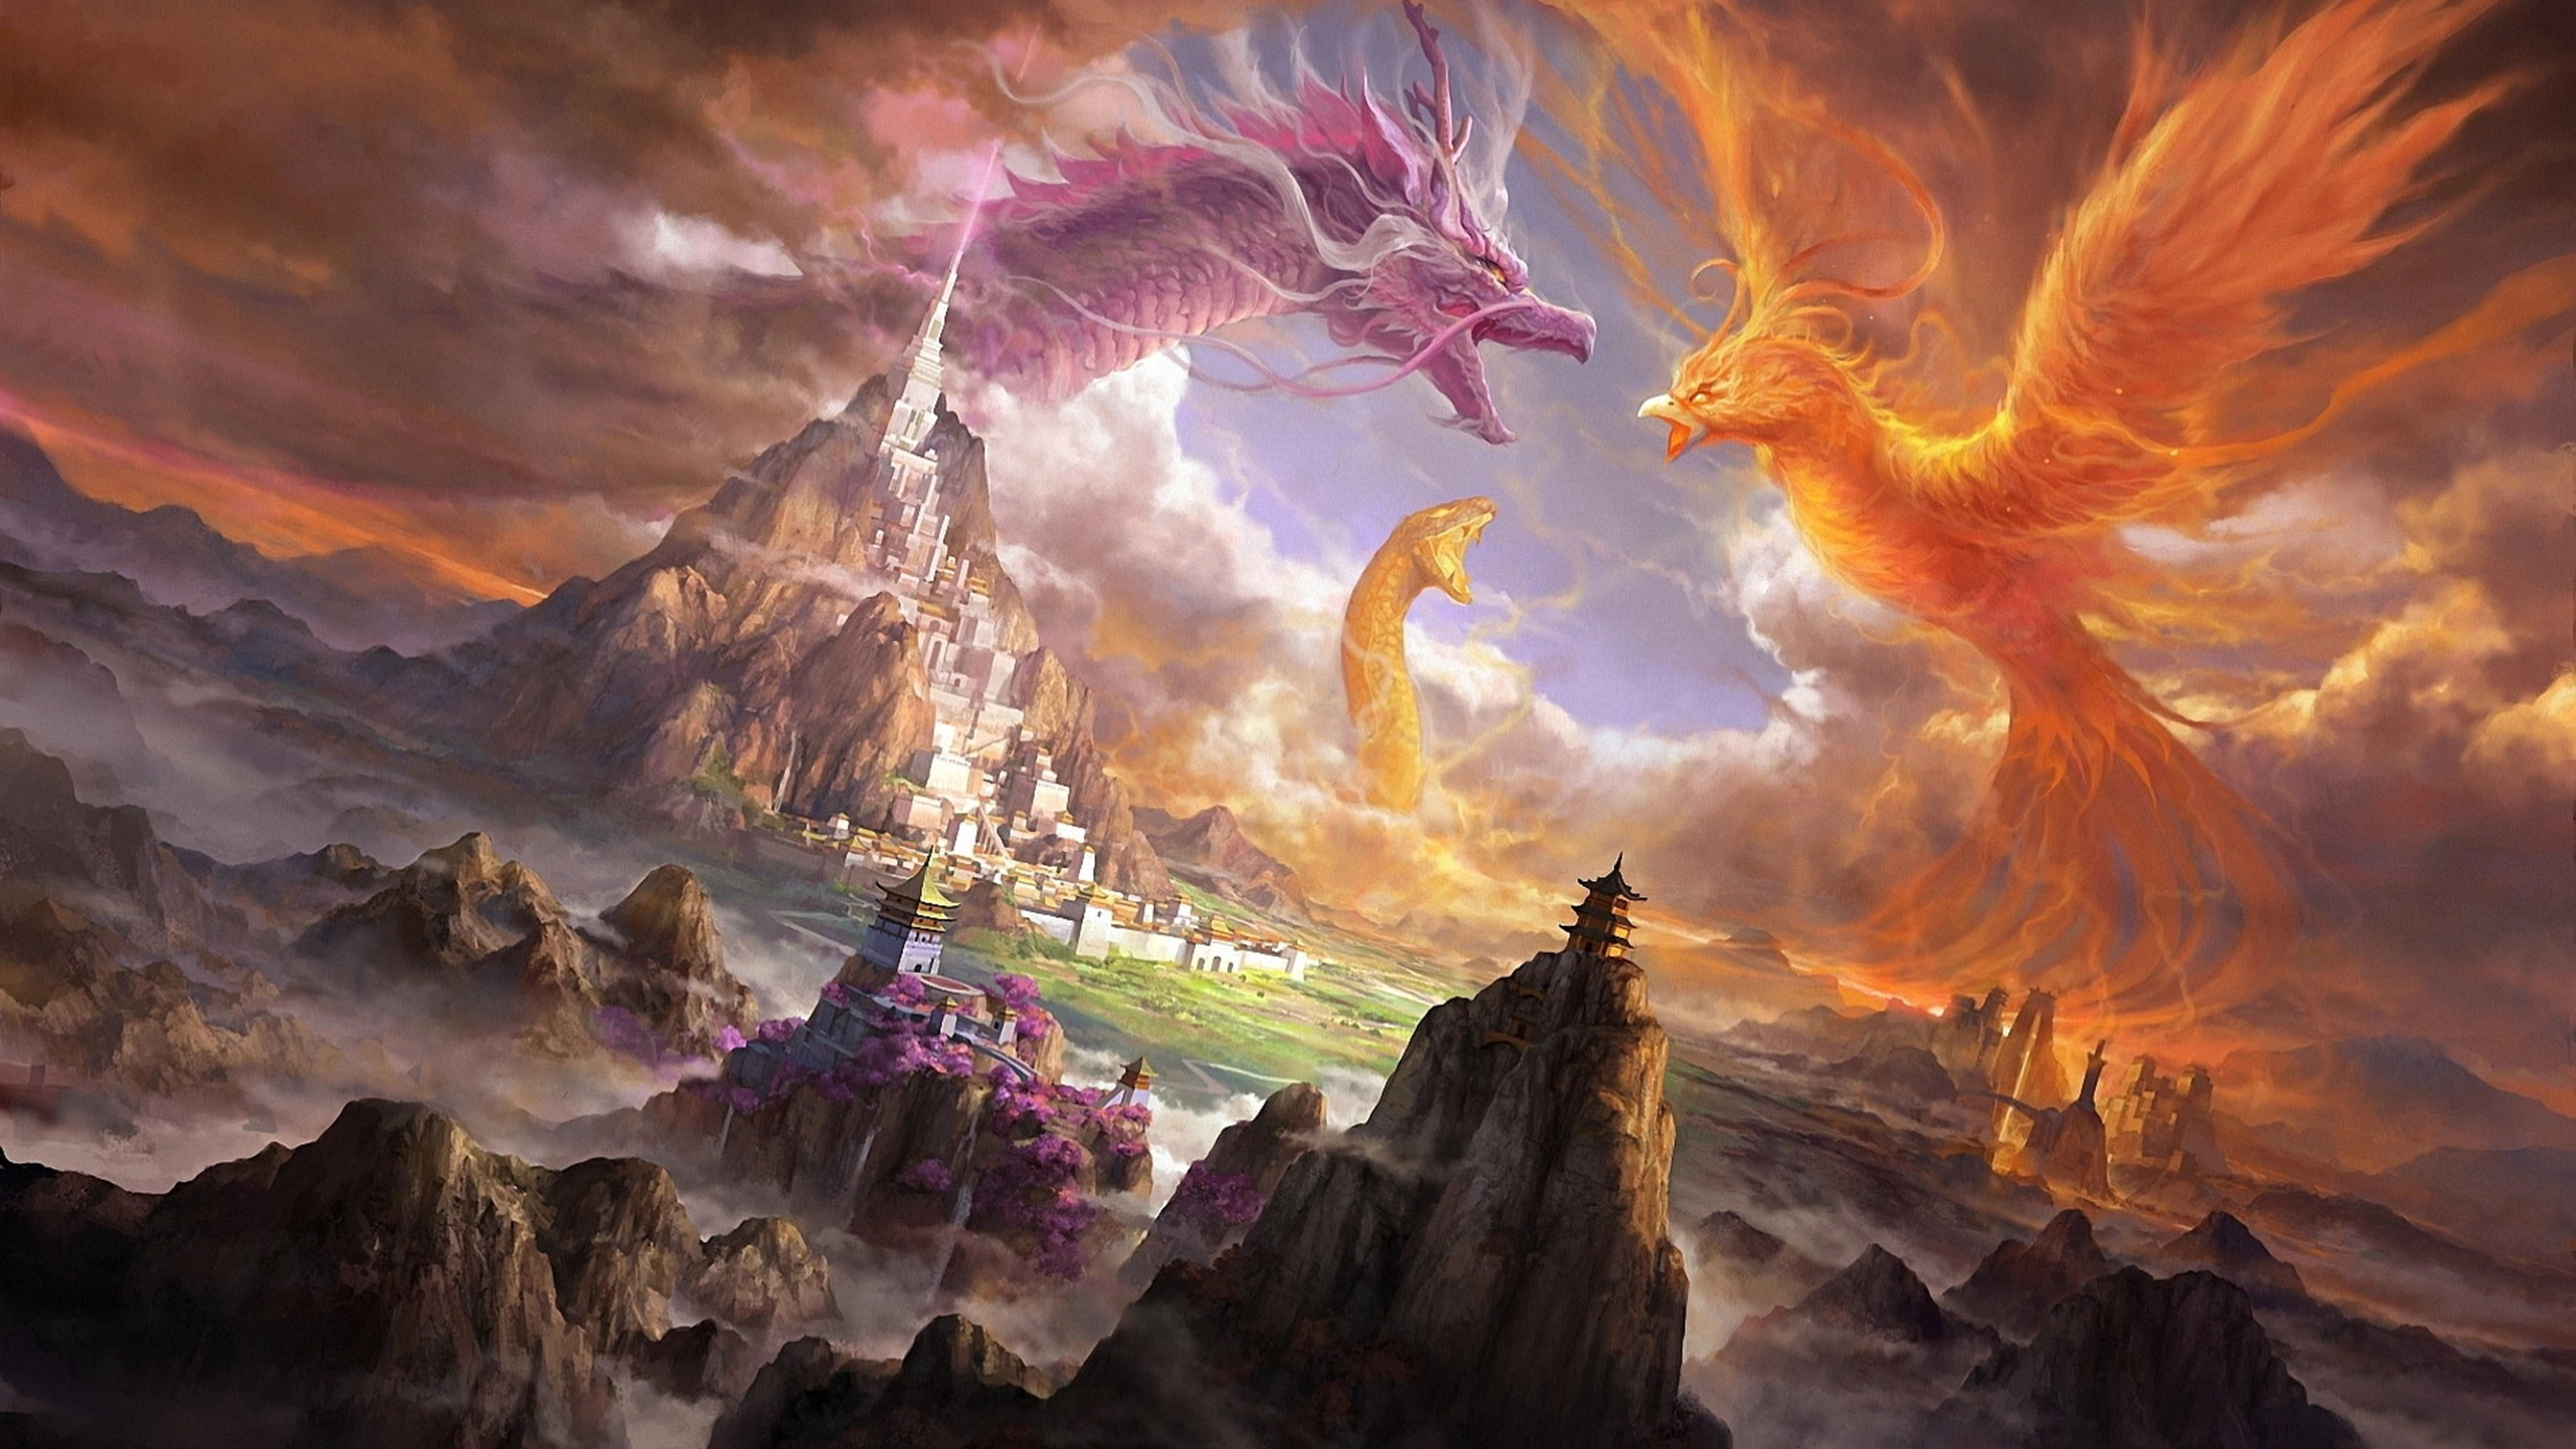 Art Phoenix Dragon Snake Digital Art Digital Castle Landscape Peaks 4k Wallpaper Hdwallpaper Desktop In 2020 Phoenix Dragon Snake Art Phoenix Wallpaper